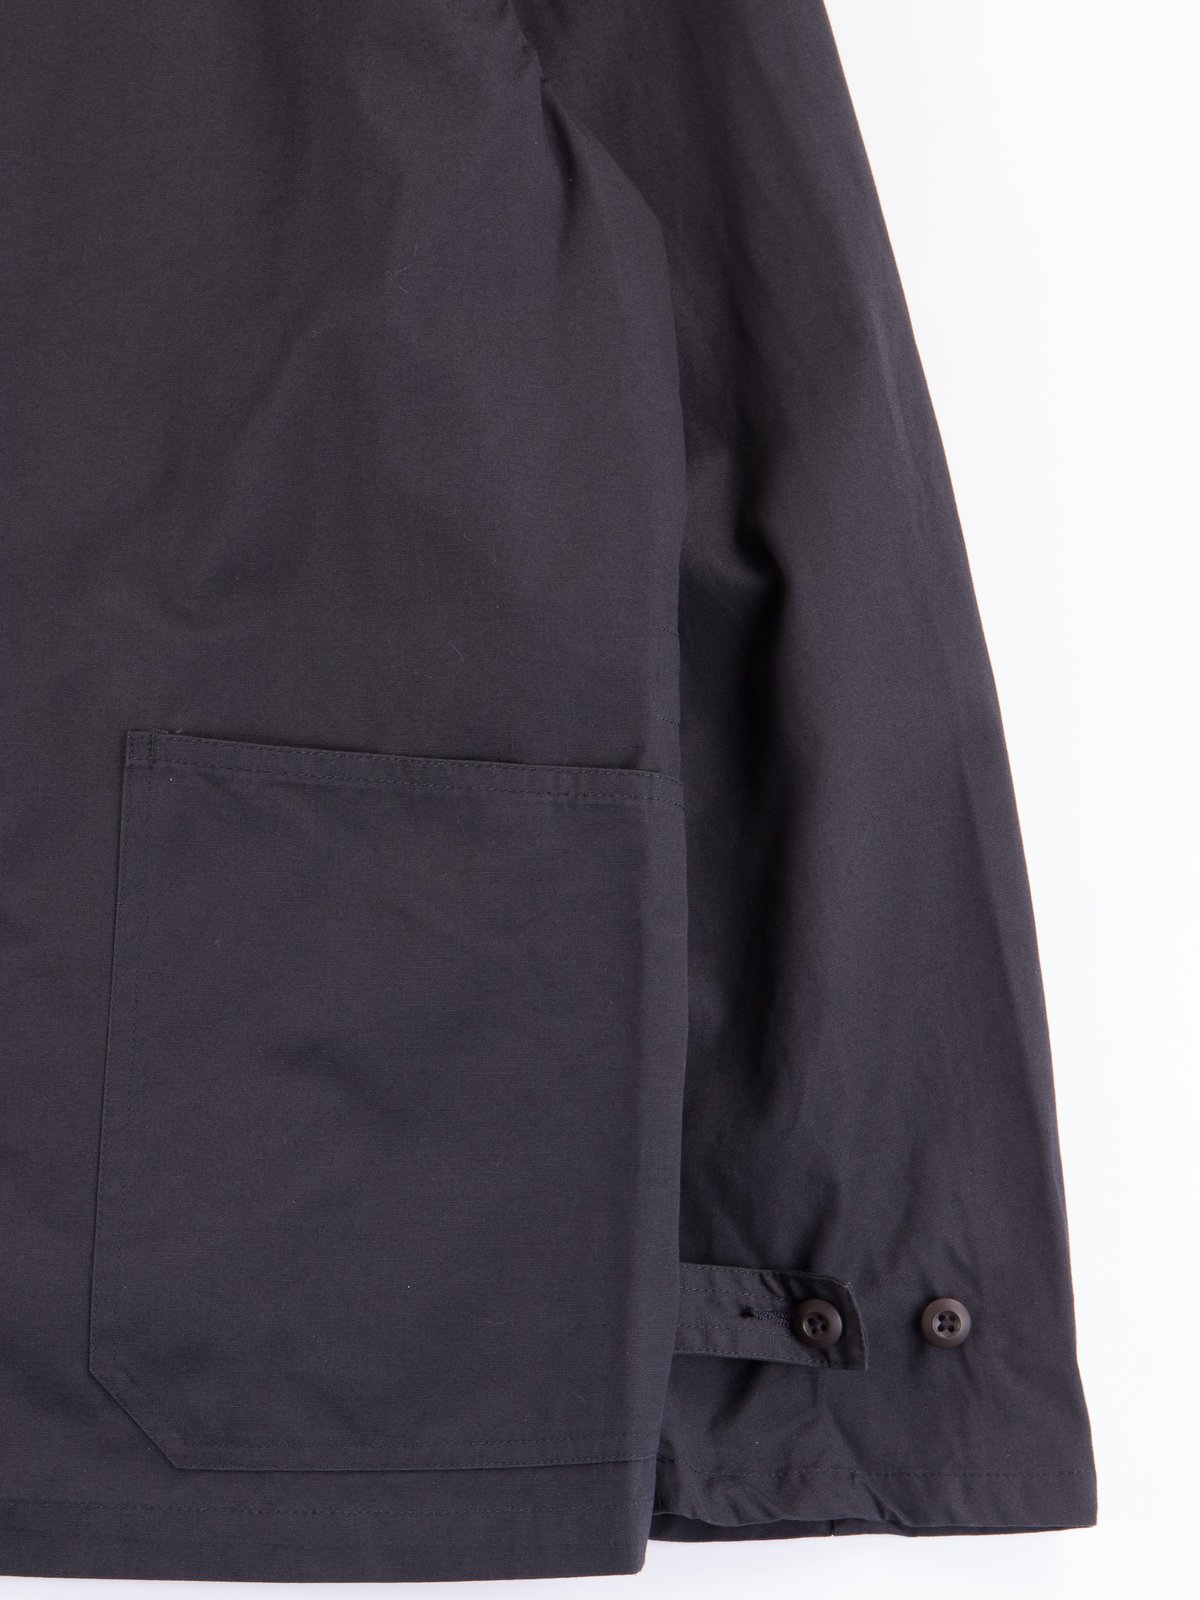 Fade Black Utility Coverall Jacket - Image 3